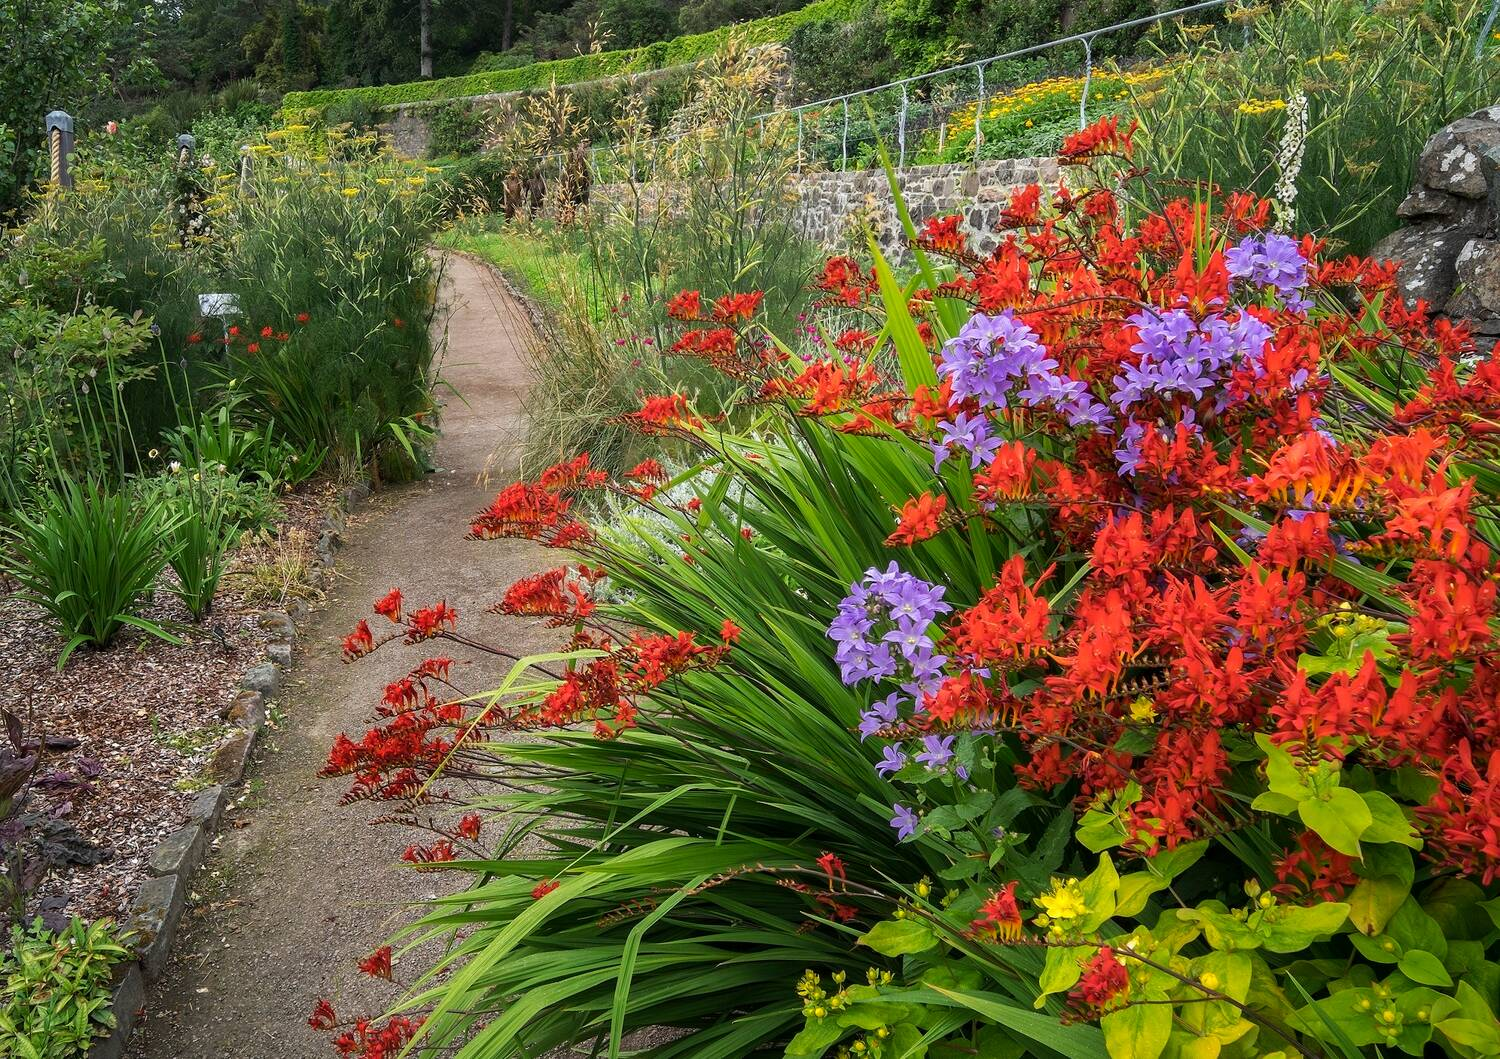 A view of a colourful flower border beside a gravel path in a terraced walled garden.